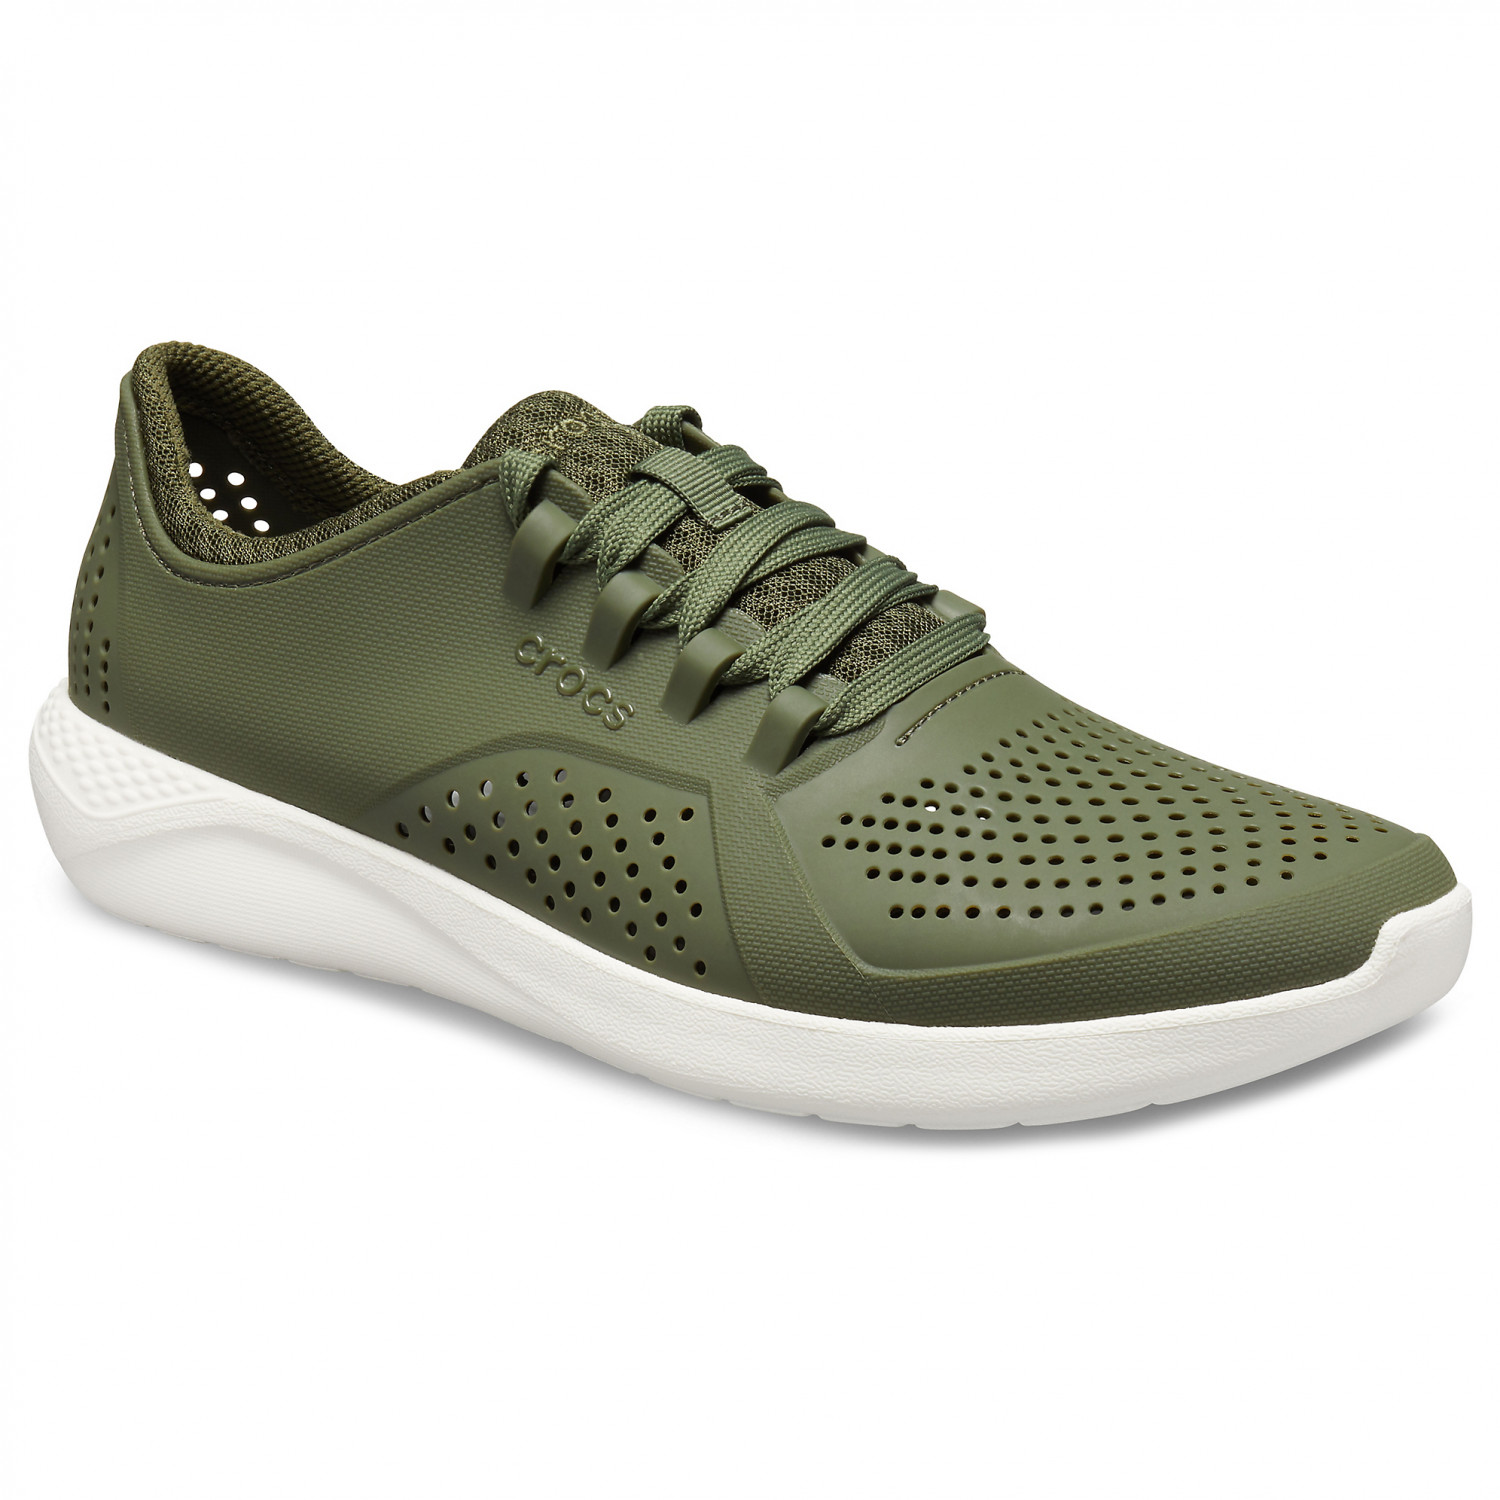 a59cff9e48845a ... Crocs - LiteRide Pacer - Sneakers ...